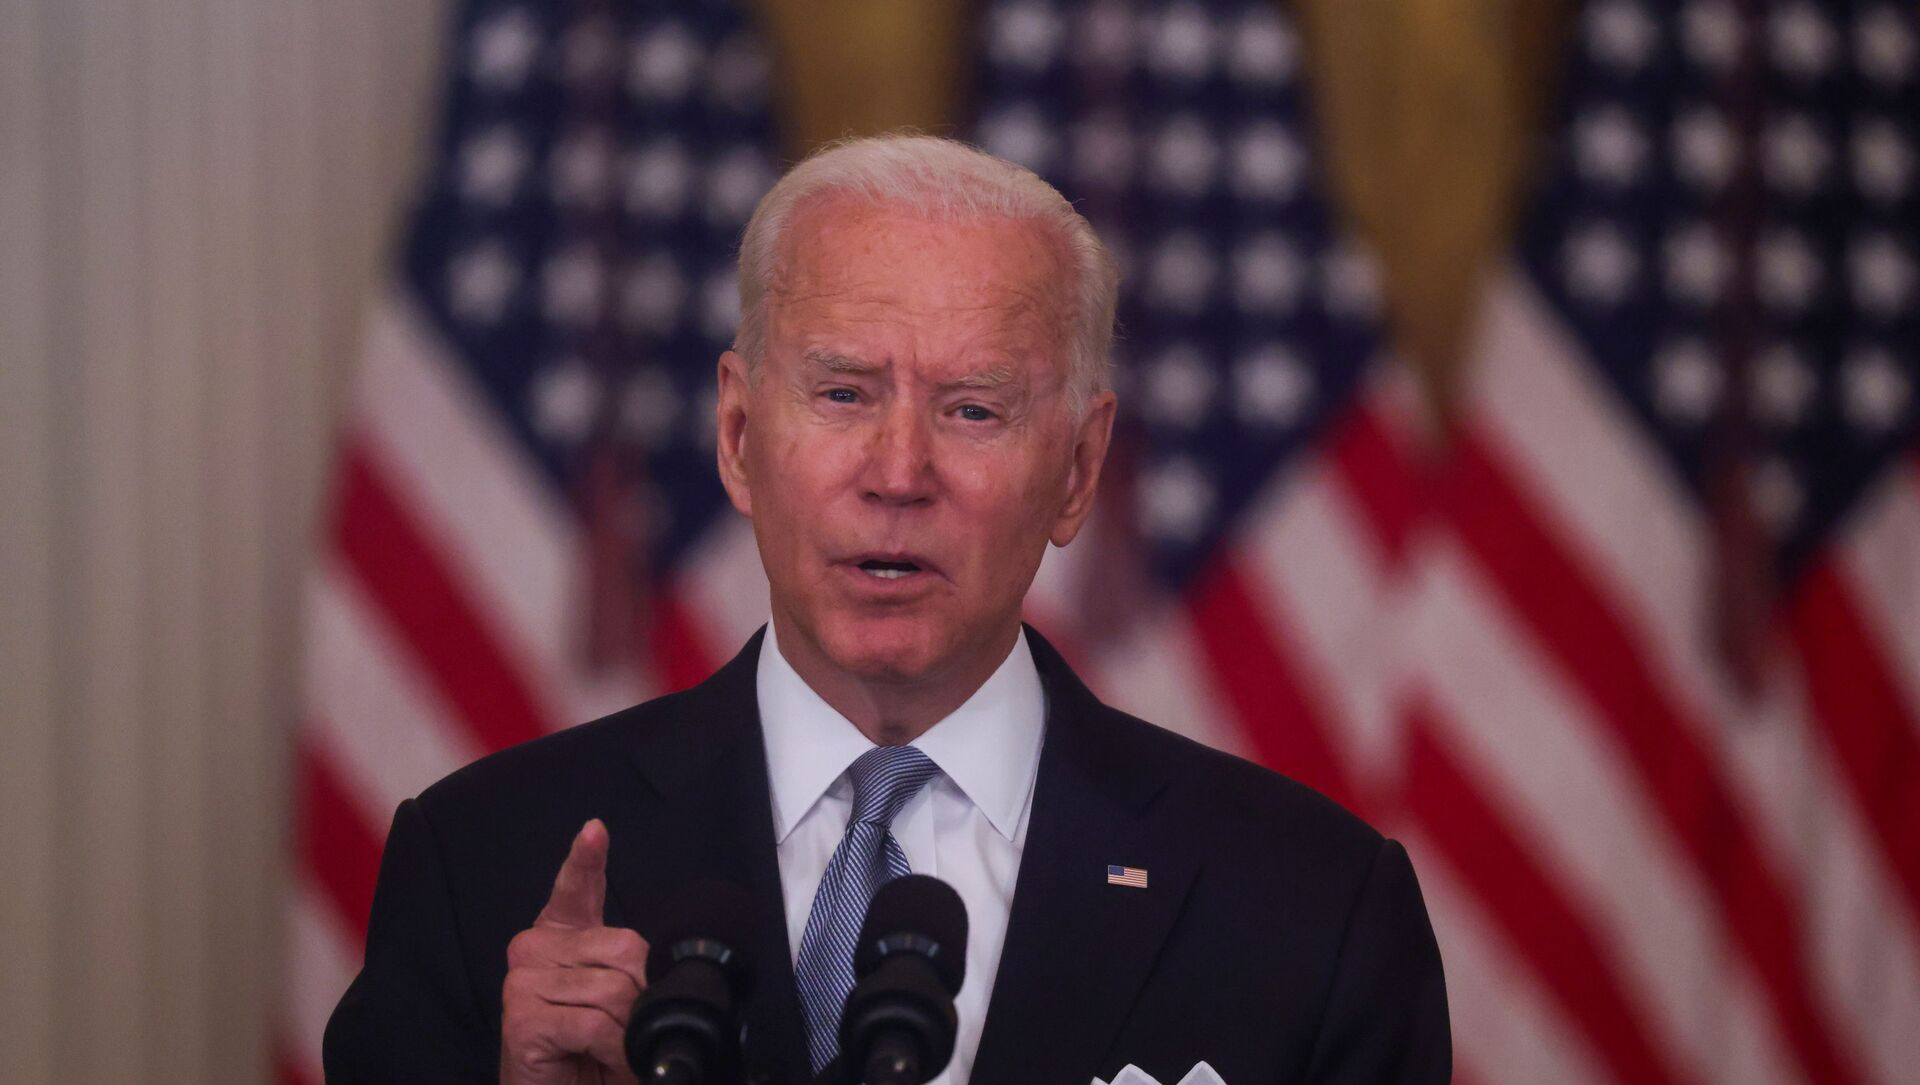 U.S. President Joe Biden delivers remarks on the crisis in Afghanistan during a speech in the East Room at the White House in Washington, U.S., August 16, 2021. - Sputnik International, 1920, 27.08.2021